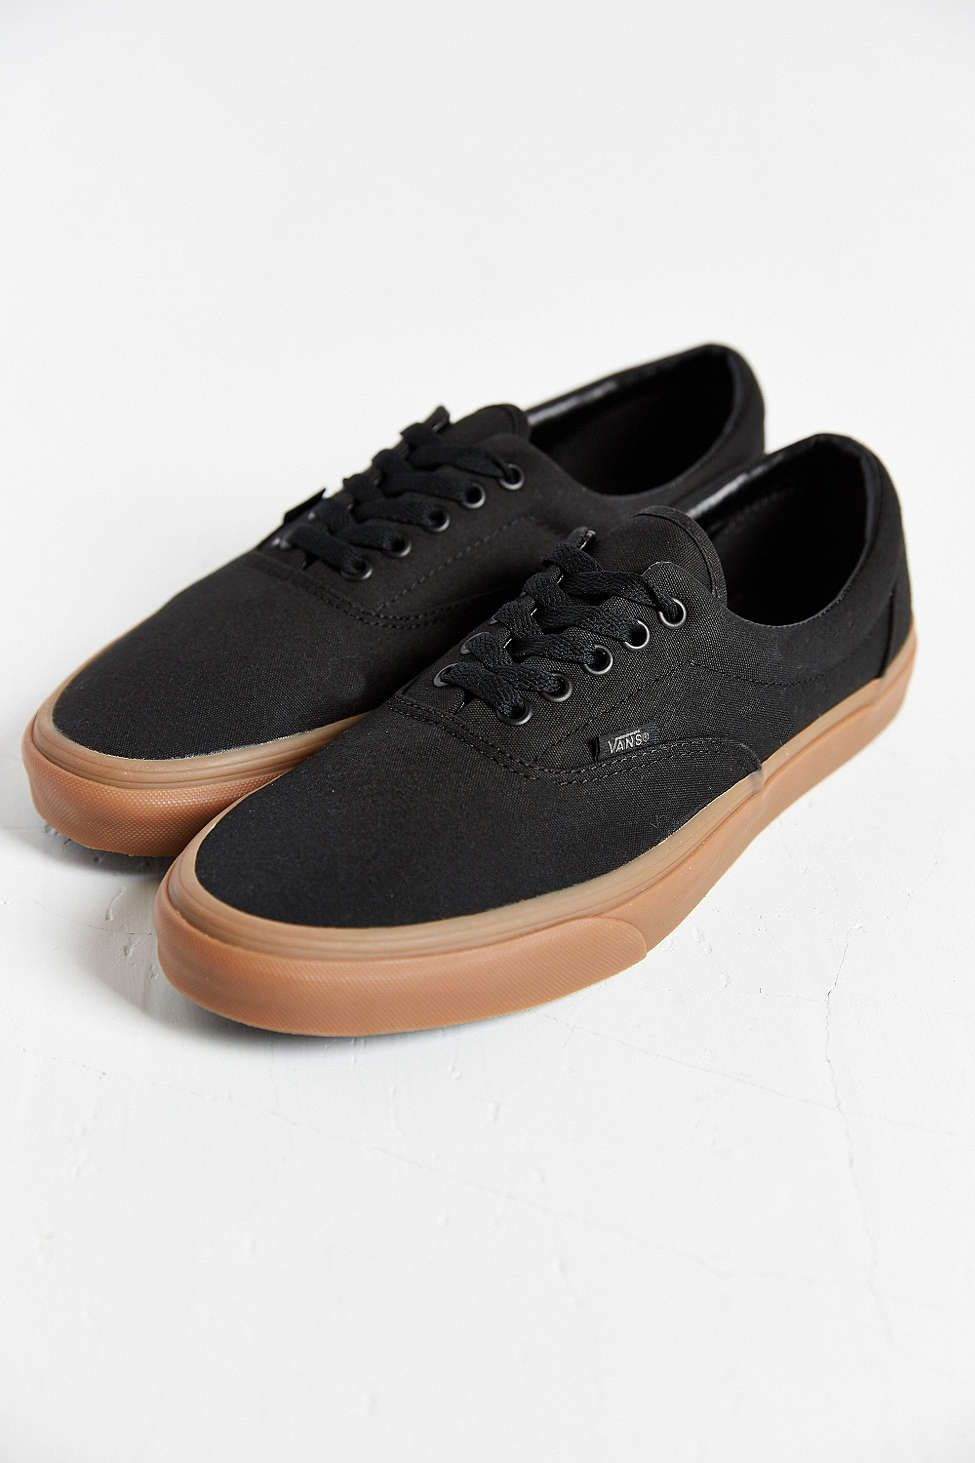 247f83c46f Vans Era Gum-Sole Men s Sneaker